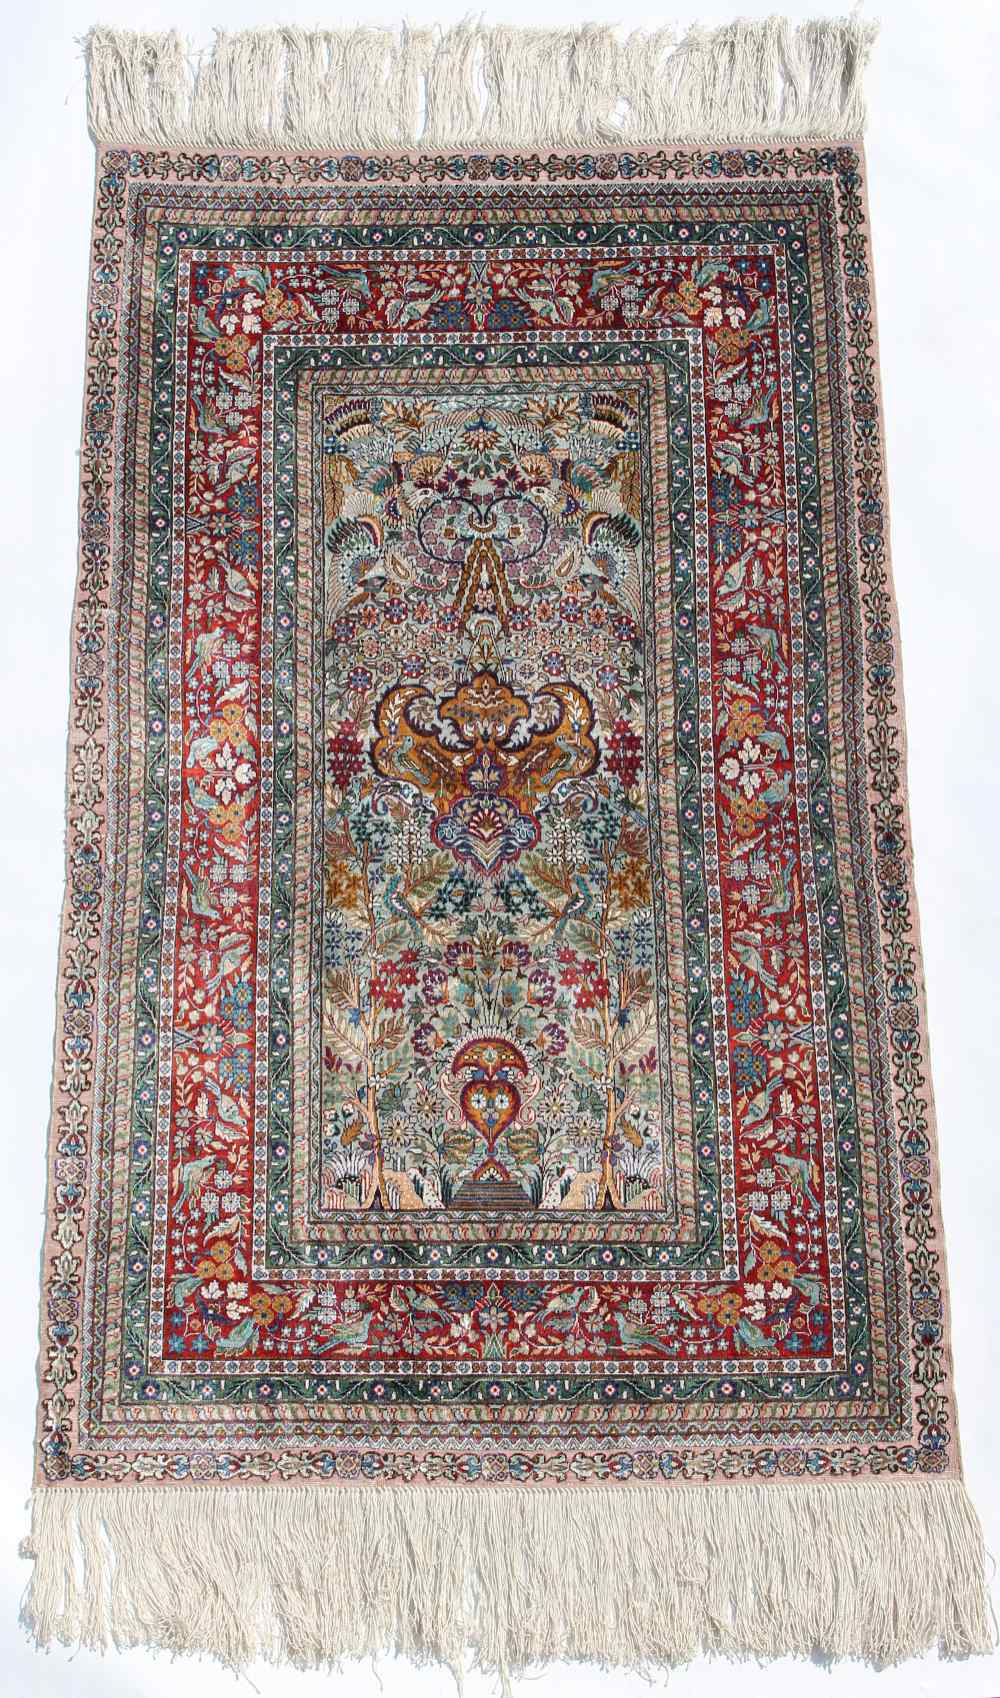 Property of a lady - a fine quality silk prayer rug, 49 by 29ins. (125 by 74cms.) (see